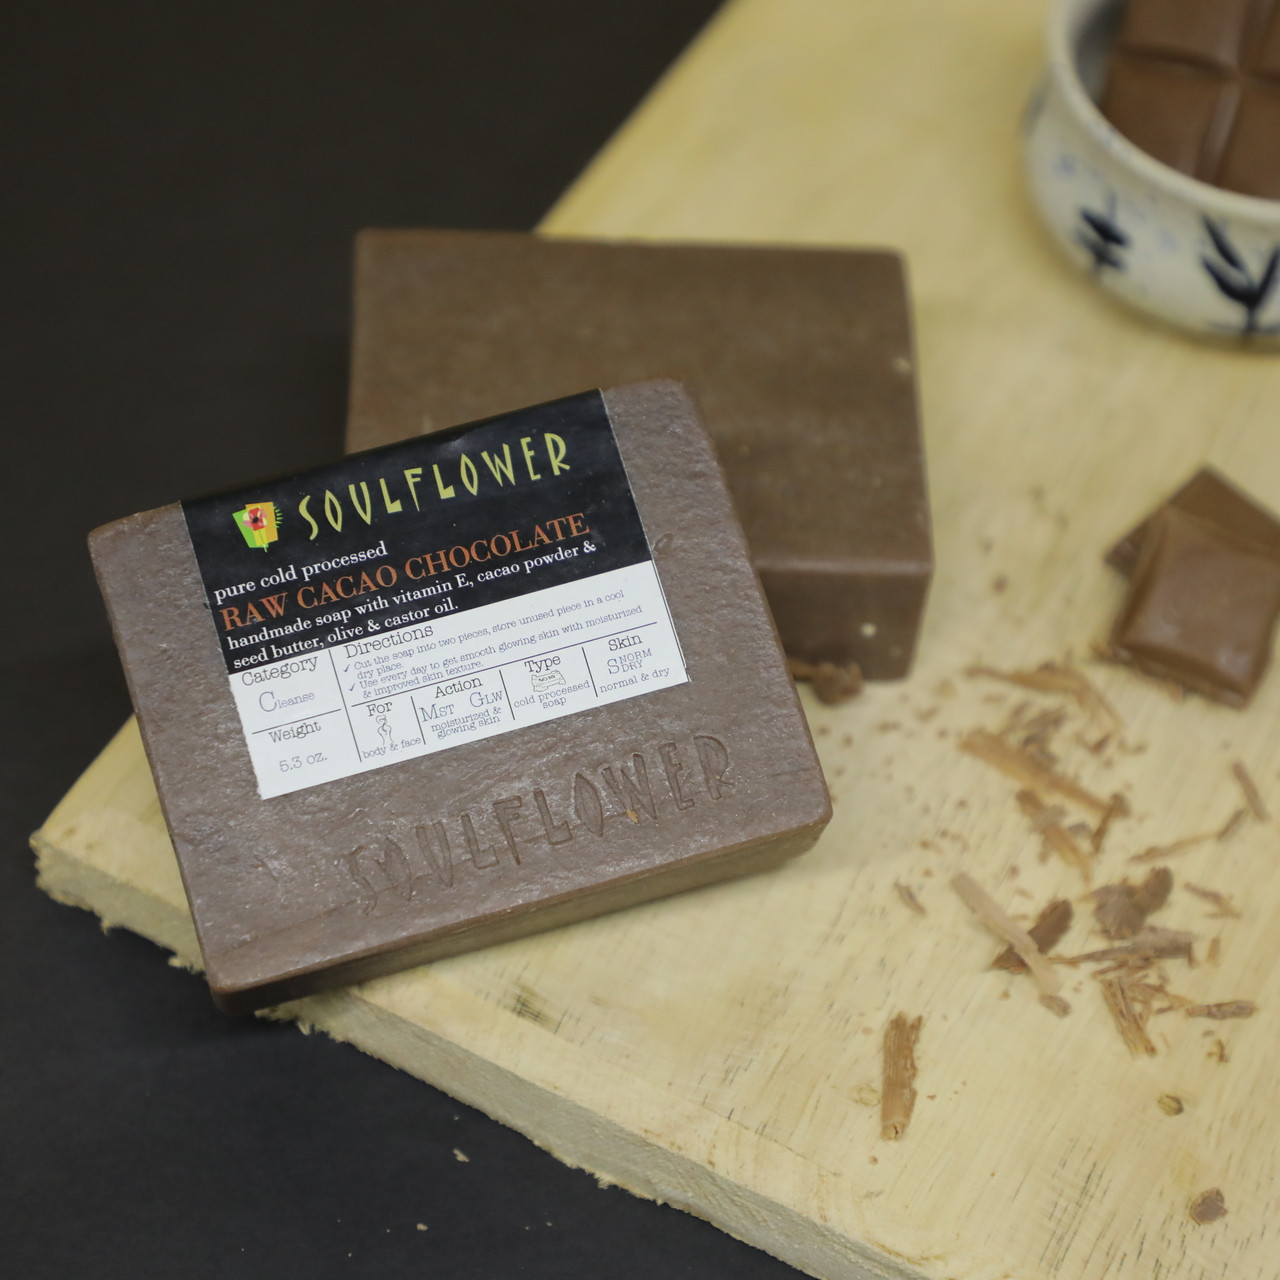 Soulflower Indian 100% Natural Raw Cacao Chocolate Soap